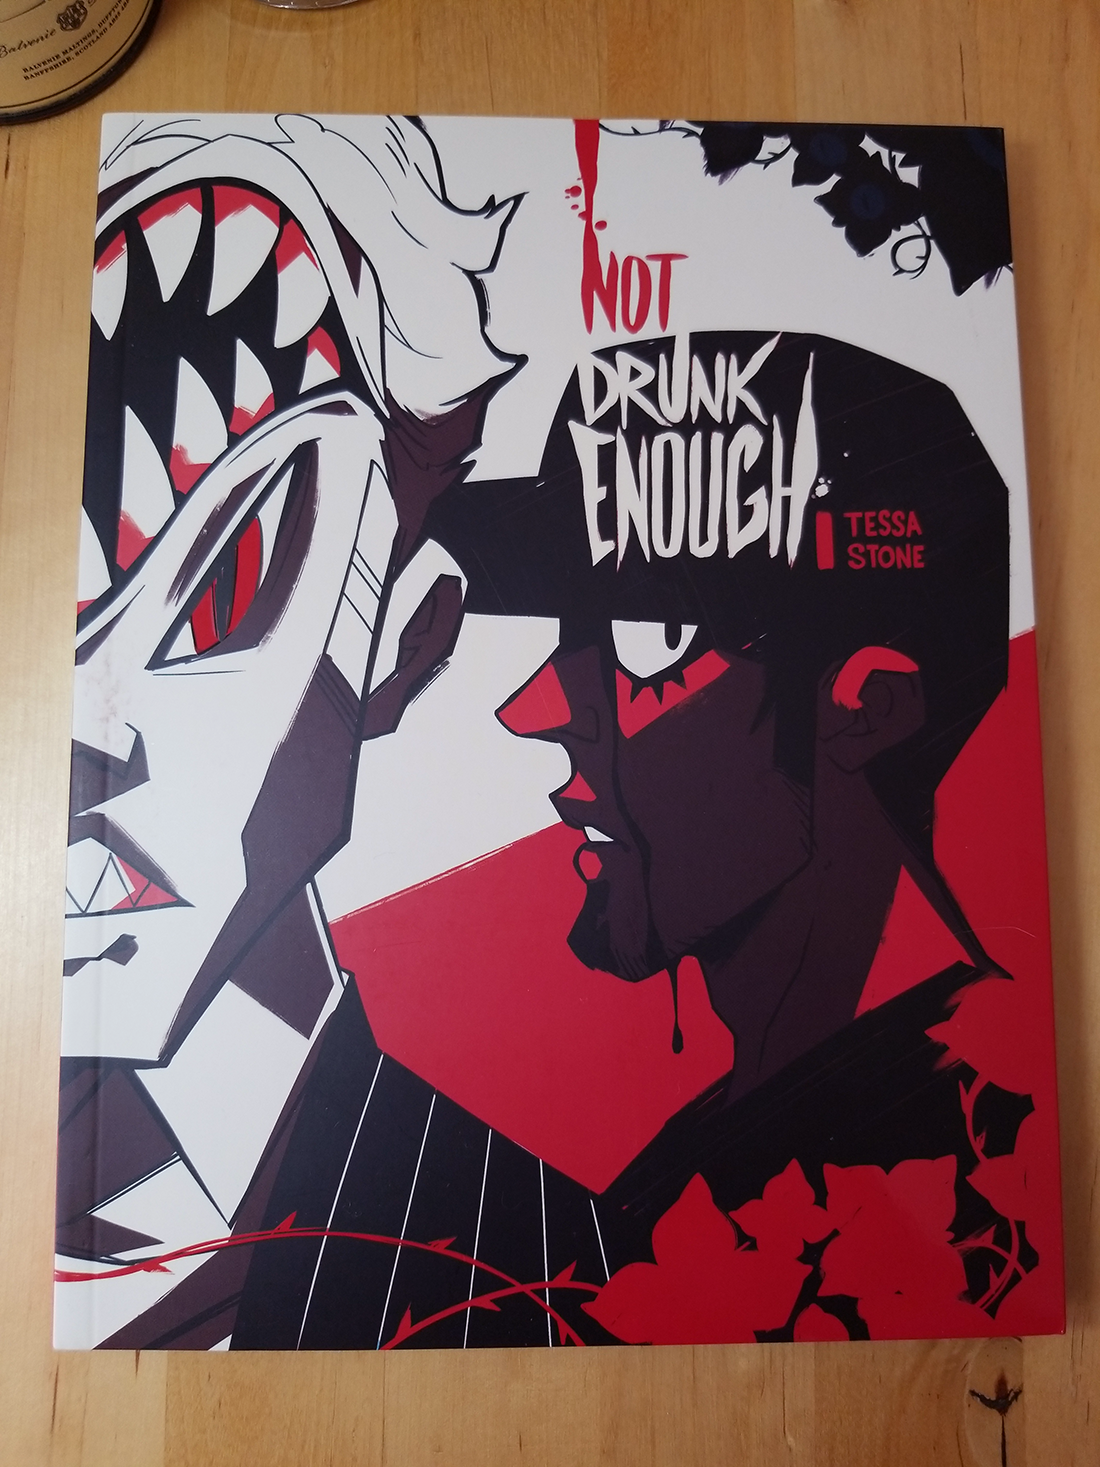 Not Drunk Enough Volume 1 from Tess Stone - Webcomic Merchandise